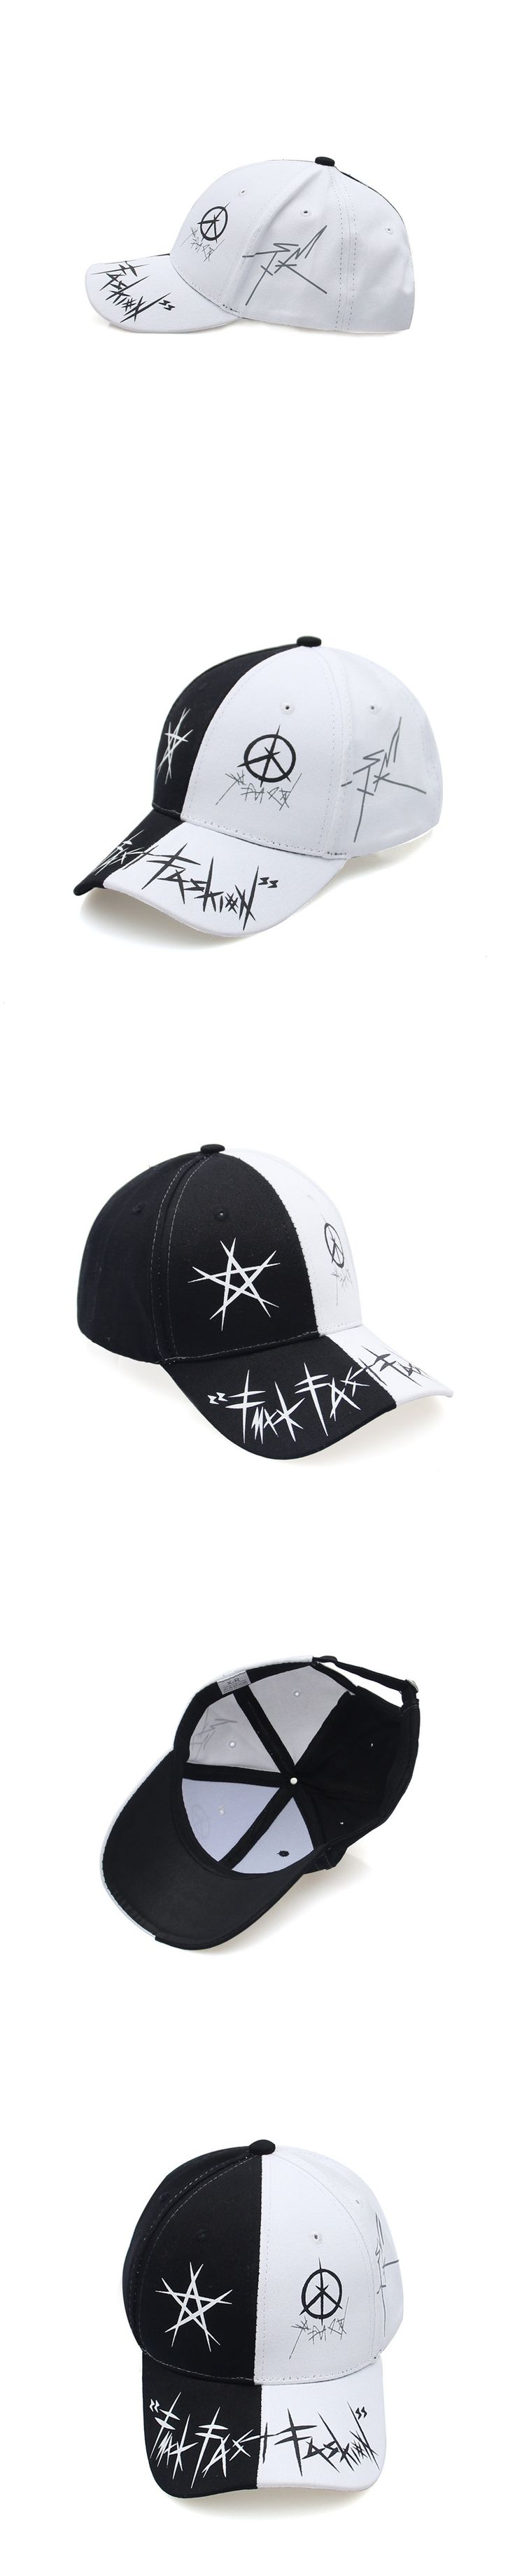 2017 Brand New Men and Women Baseball Cap Outdoor Leisure Curved Canopy Sun Hat Printing Graffiti Caps Adjustable Hip Hop Hat